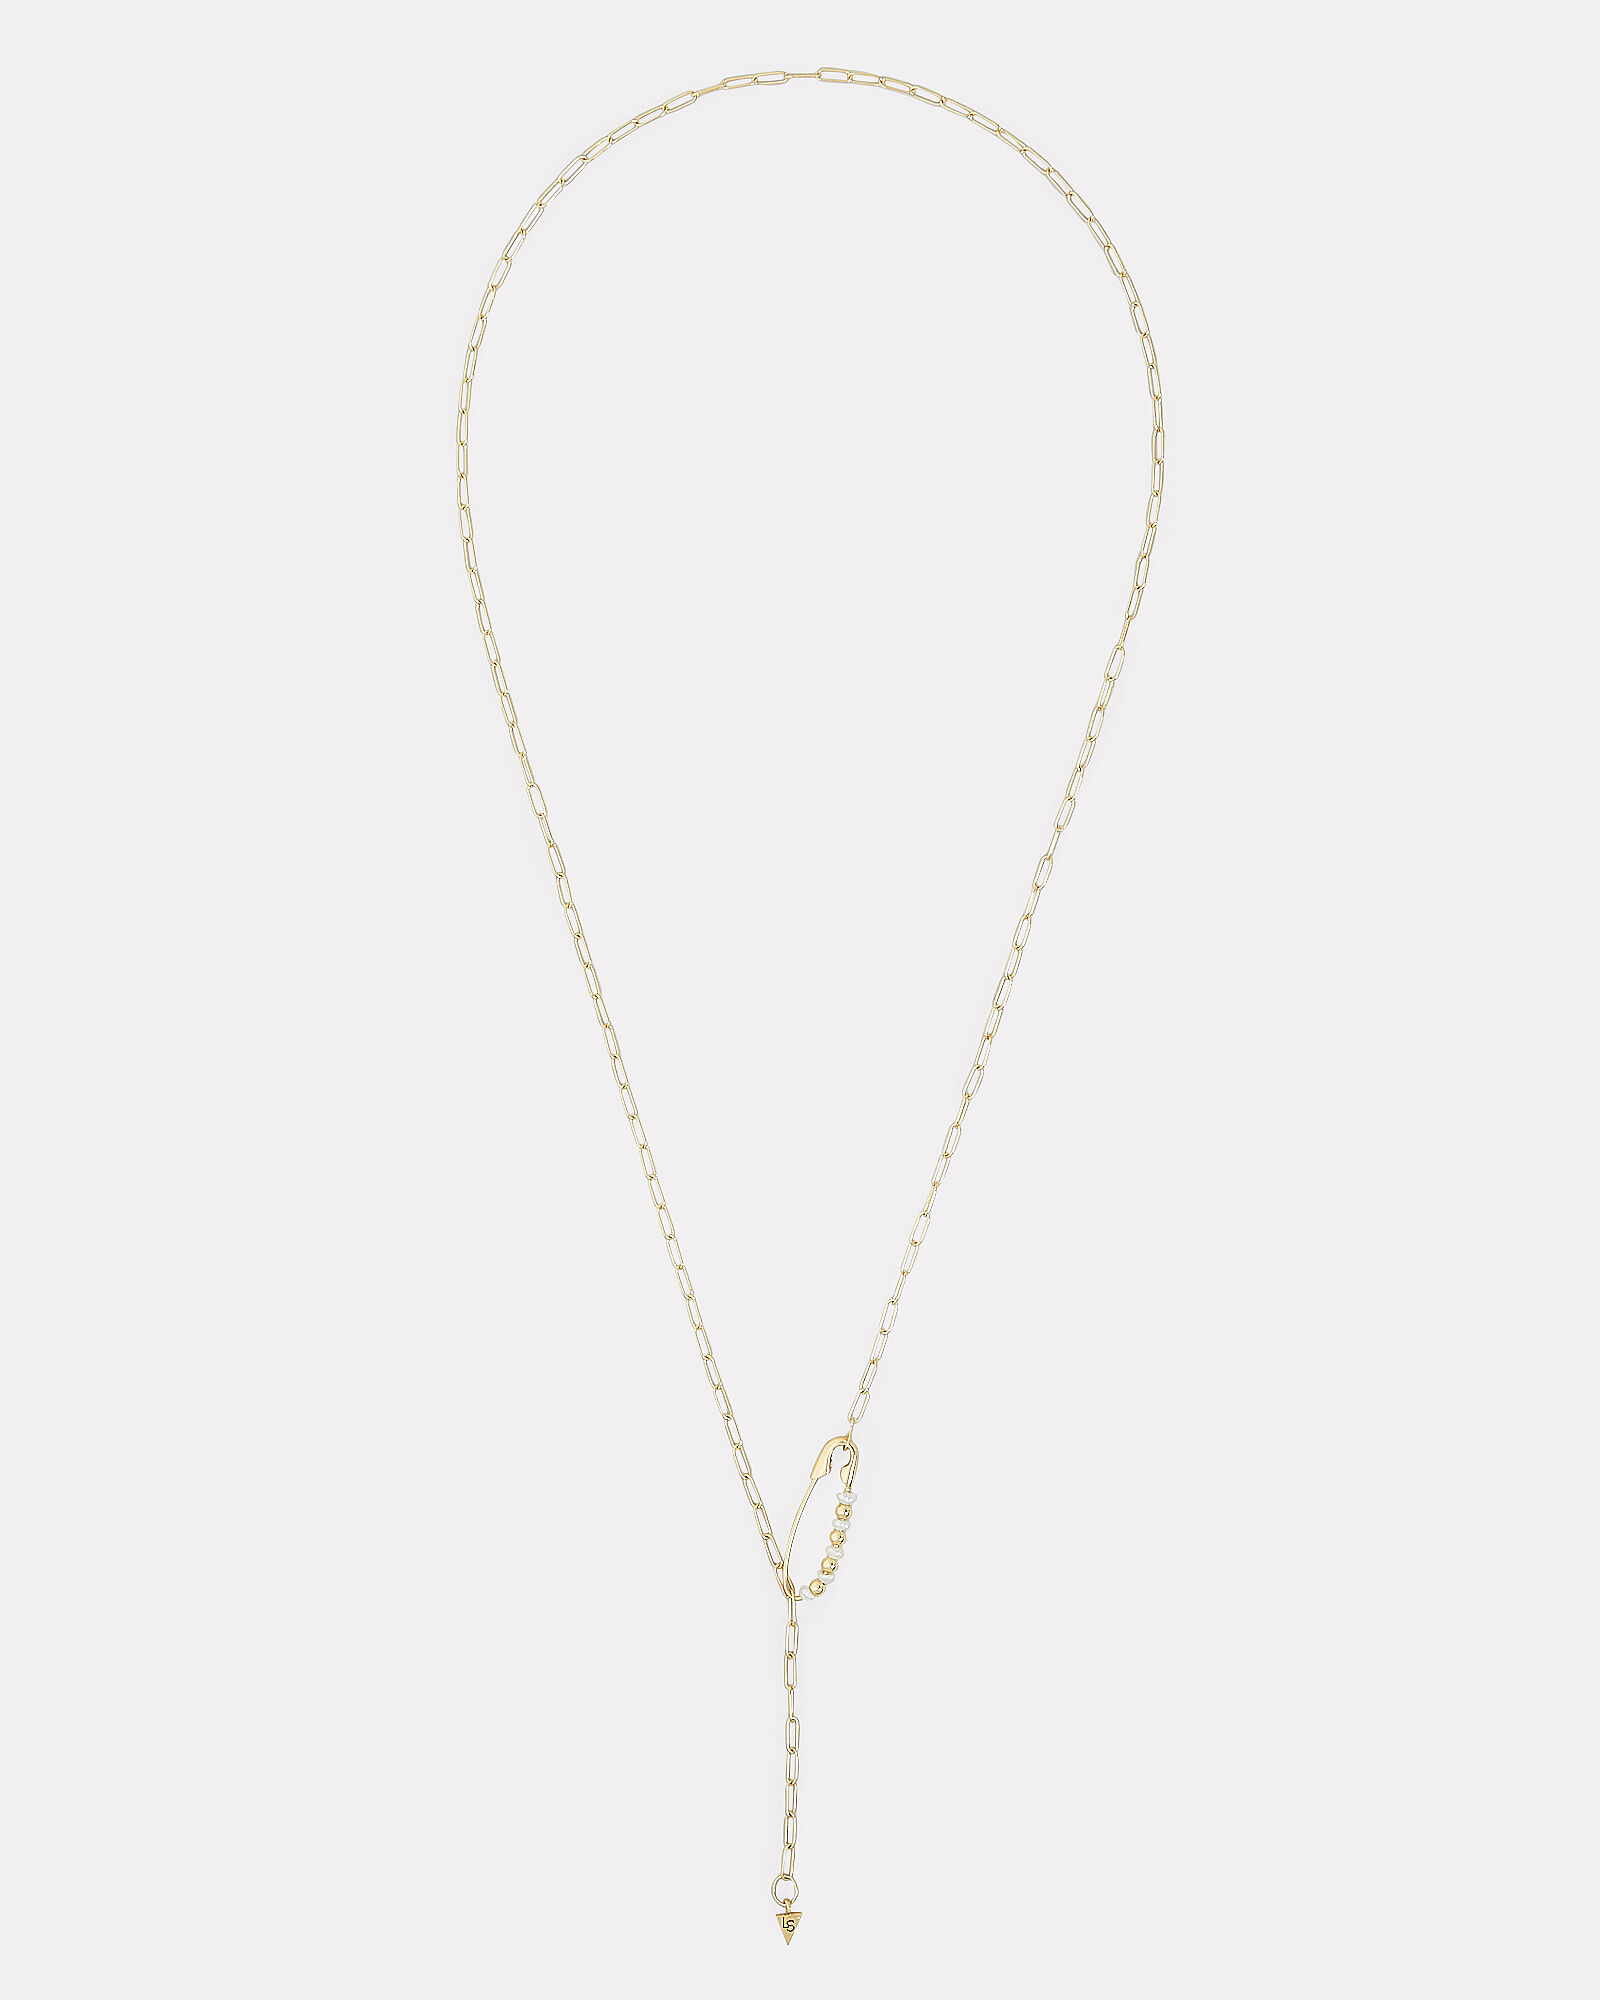 Shapeshifter Chain With Pearl Necklace, GOLD/PEARL, hi-res